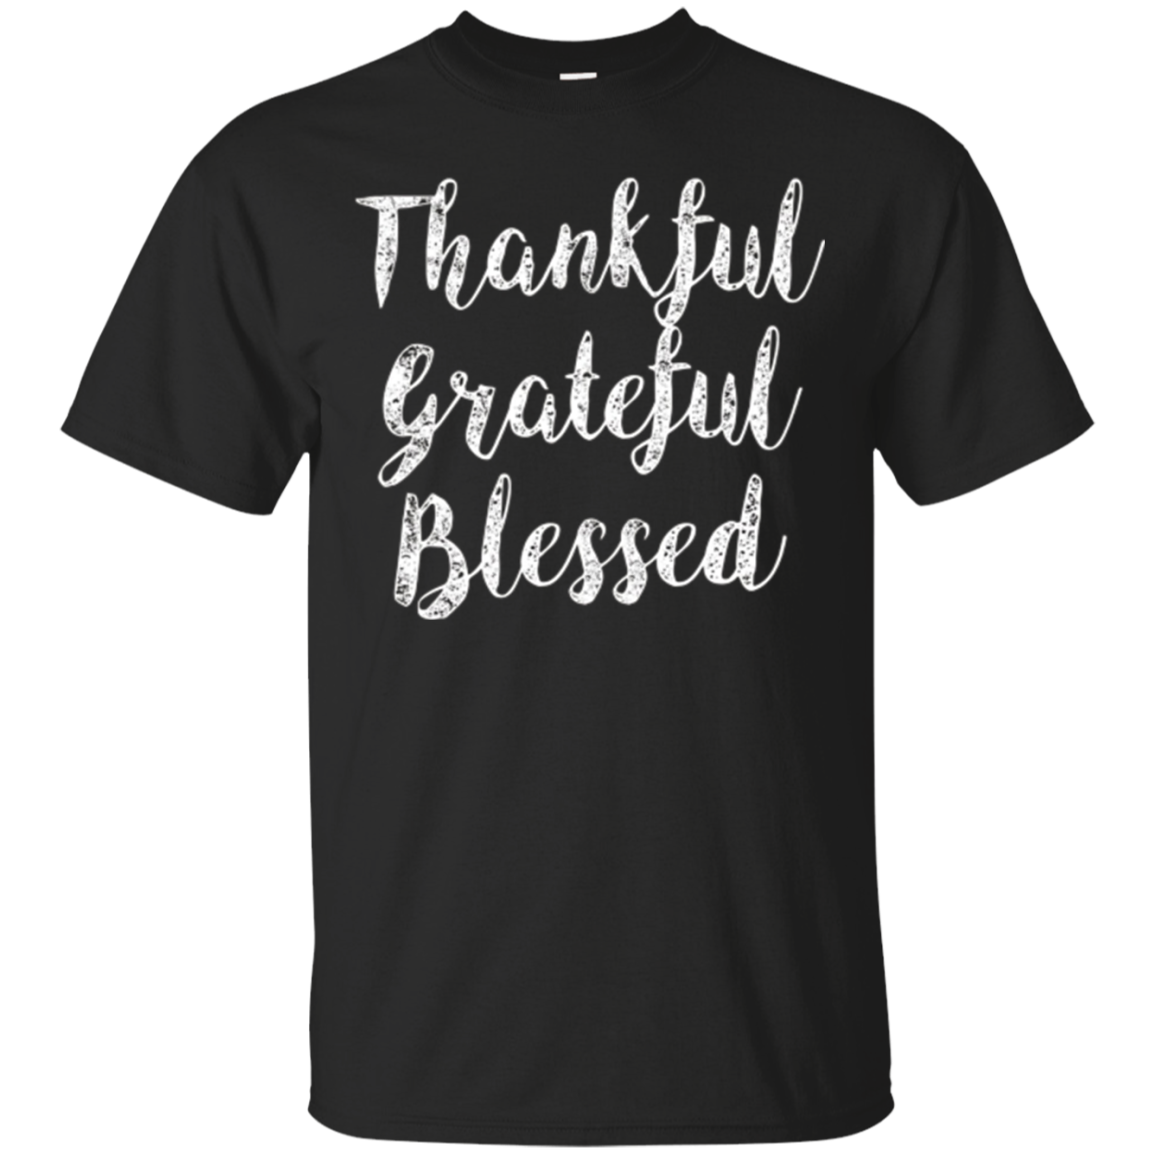 Thankful Grateful Blessed Shirts Black T-Shirts